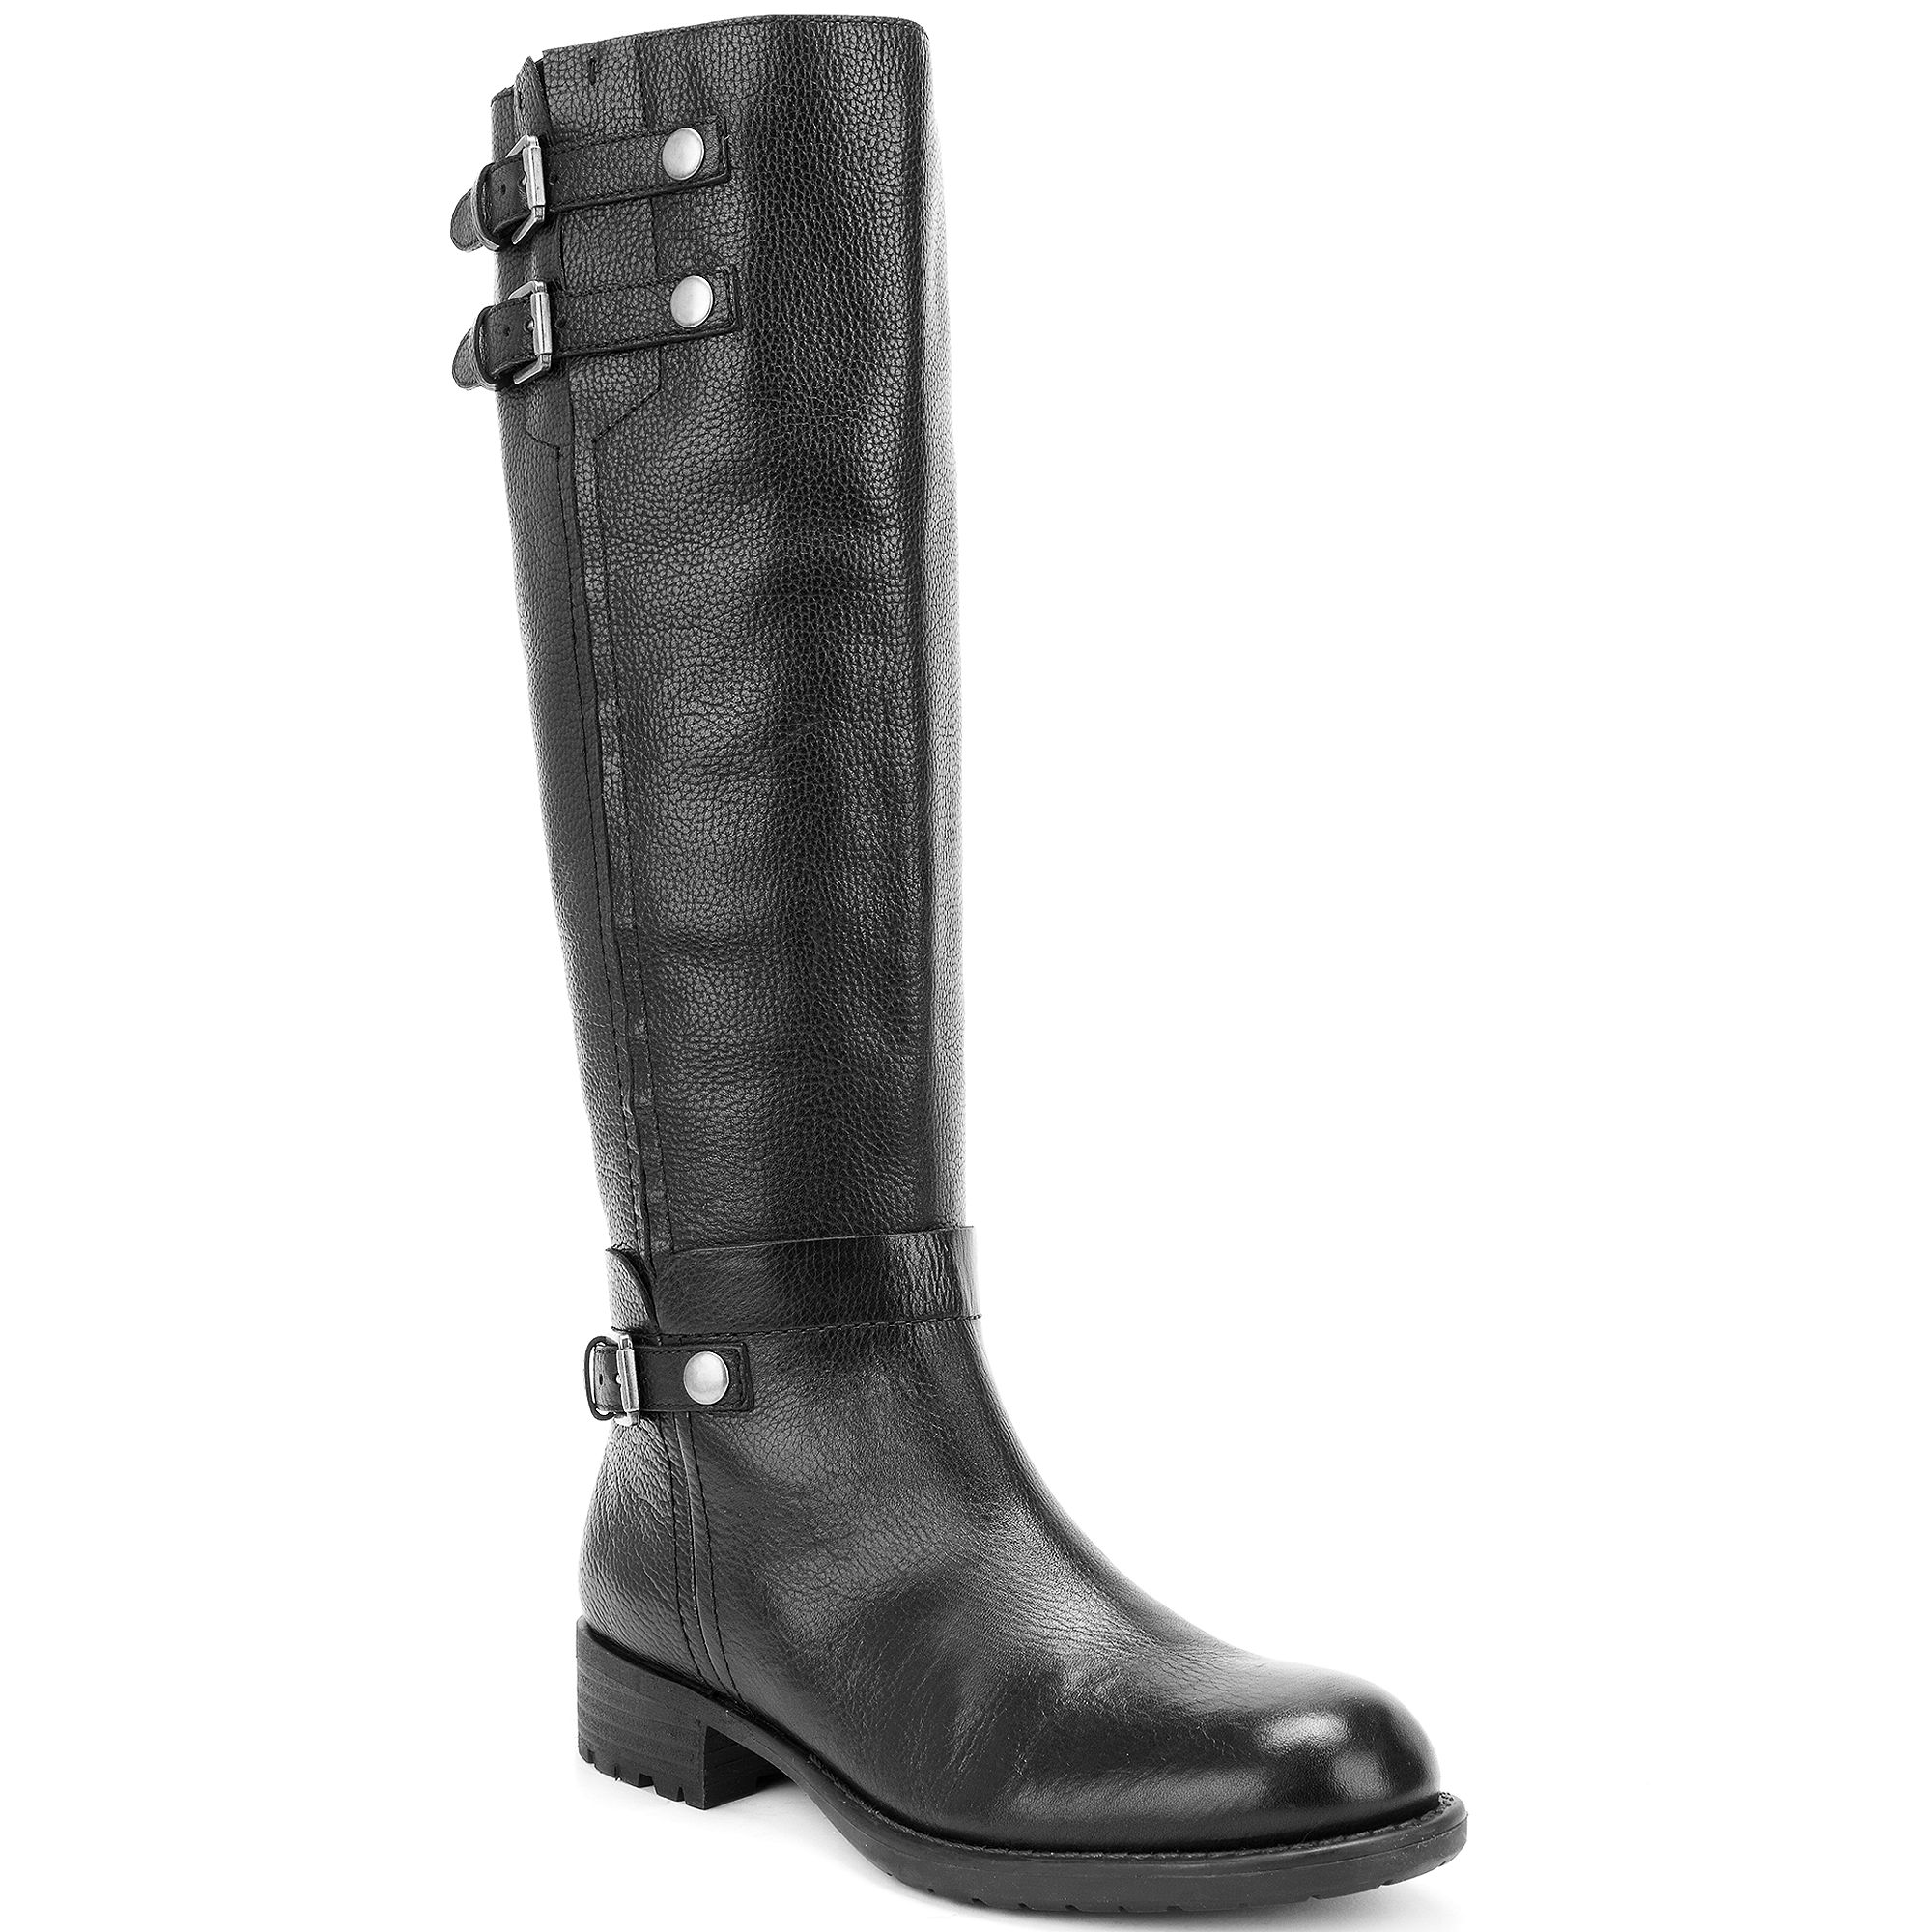 Franco sarto Pacer Tall Boots in Black